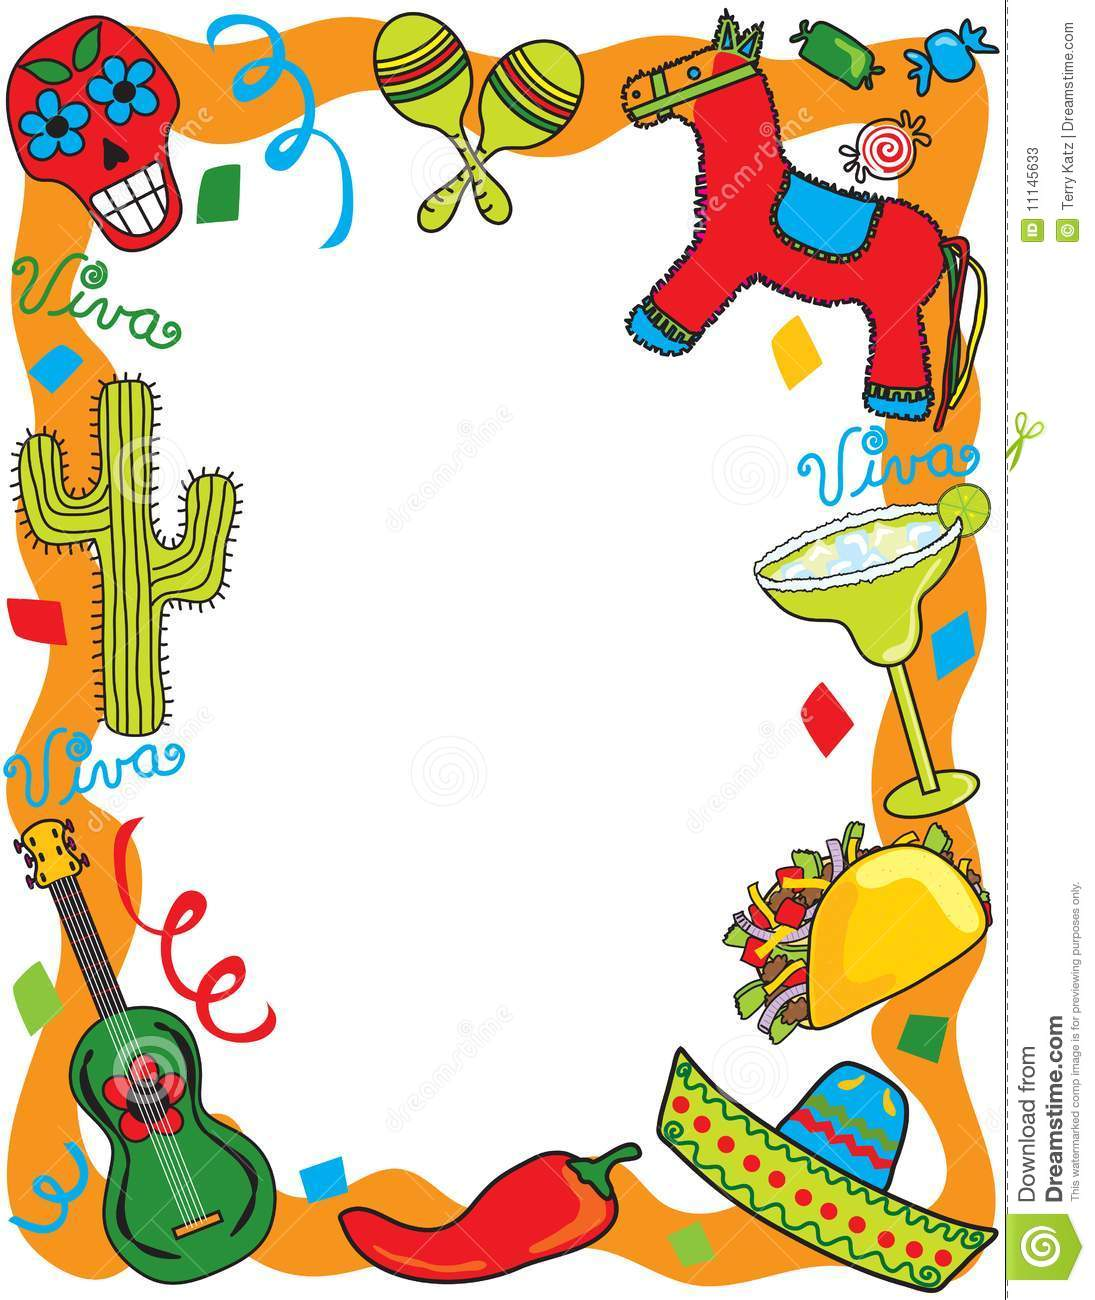 Todd Clipart 20 Fee Cliparts Download Imagenes: Fiestaware Clipart 20 Free Cliparts